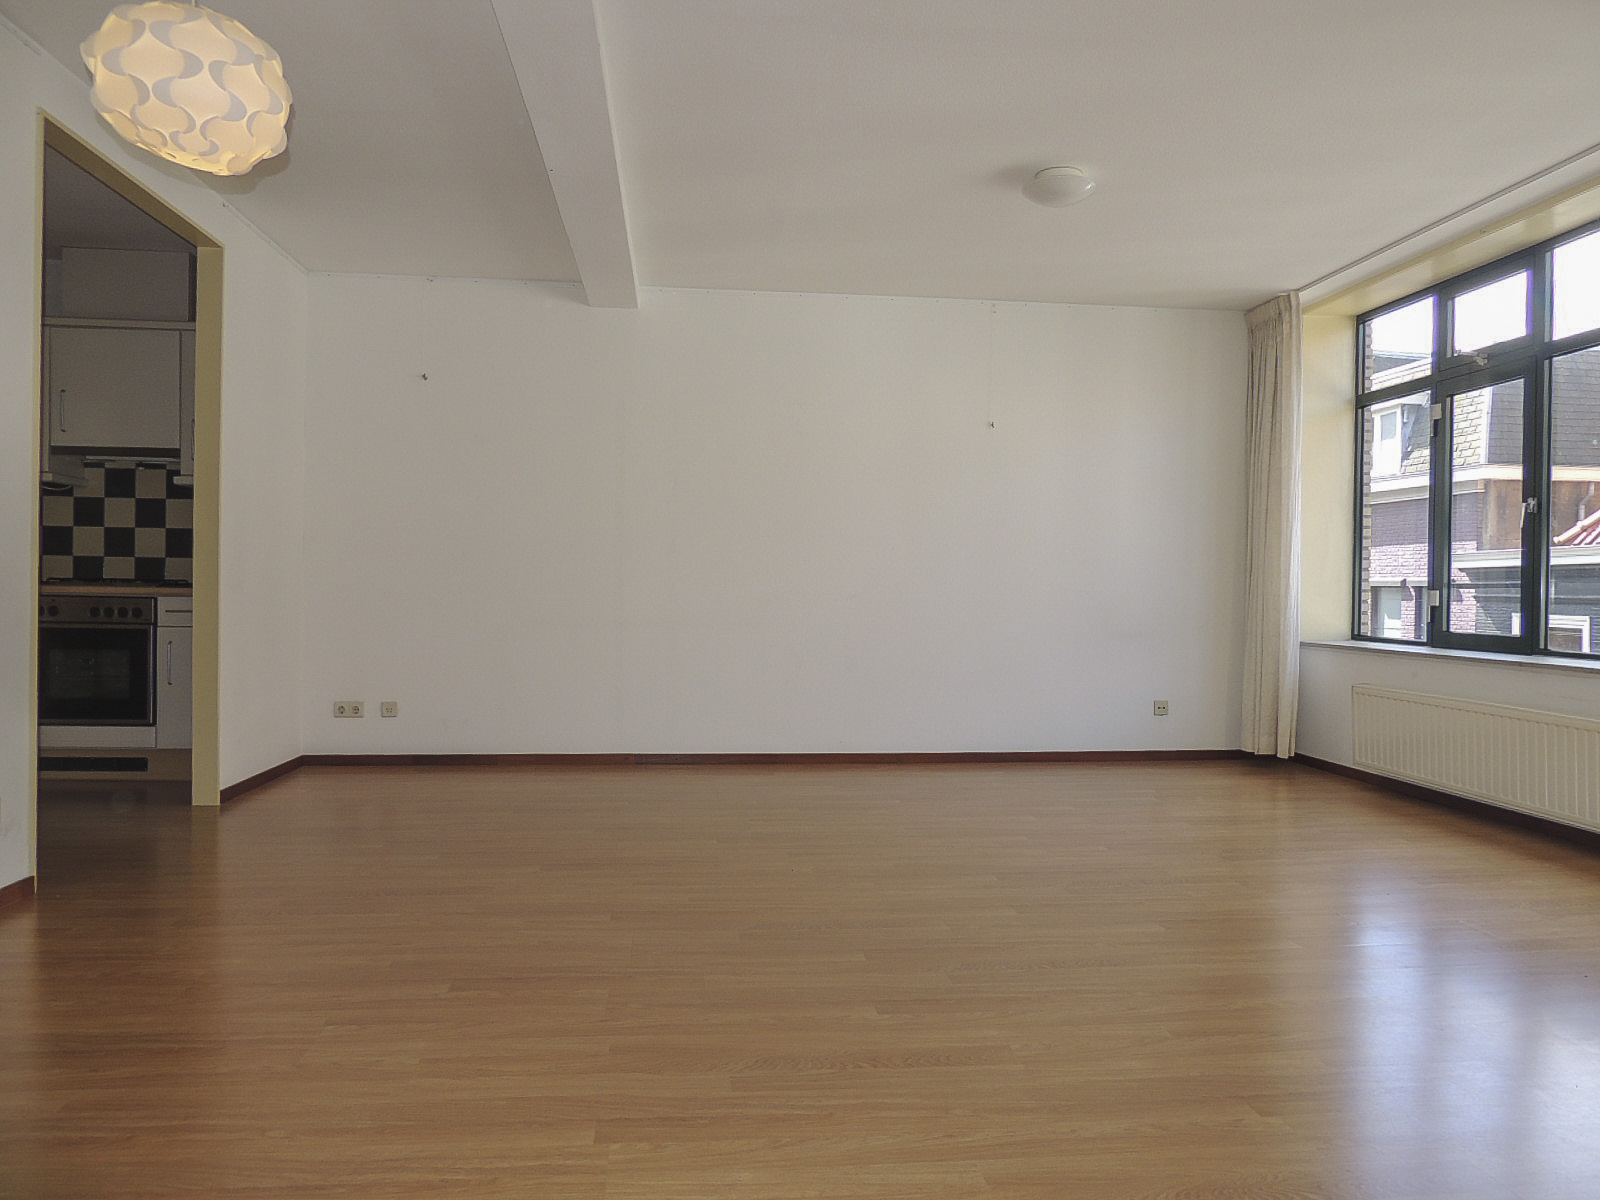 Buitenhof 2 bedroom apartment, The Hague